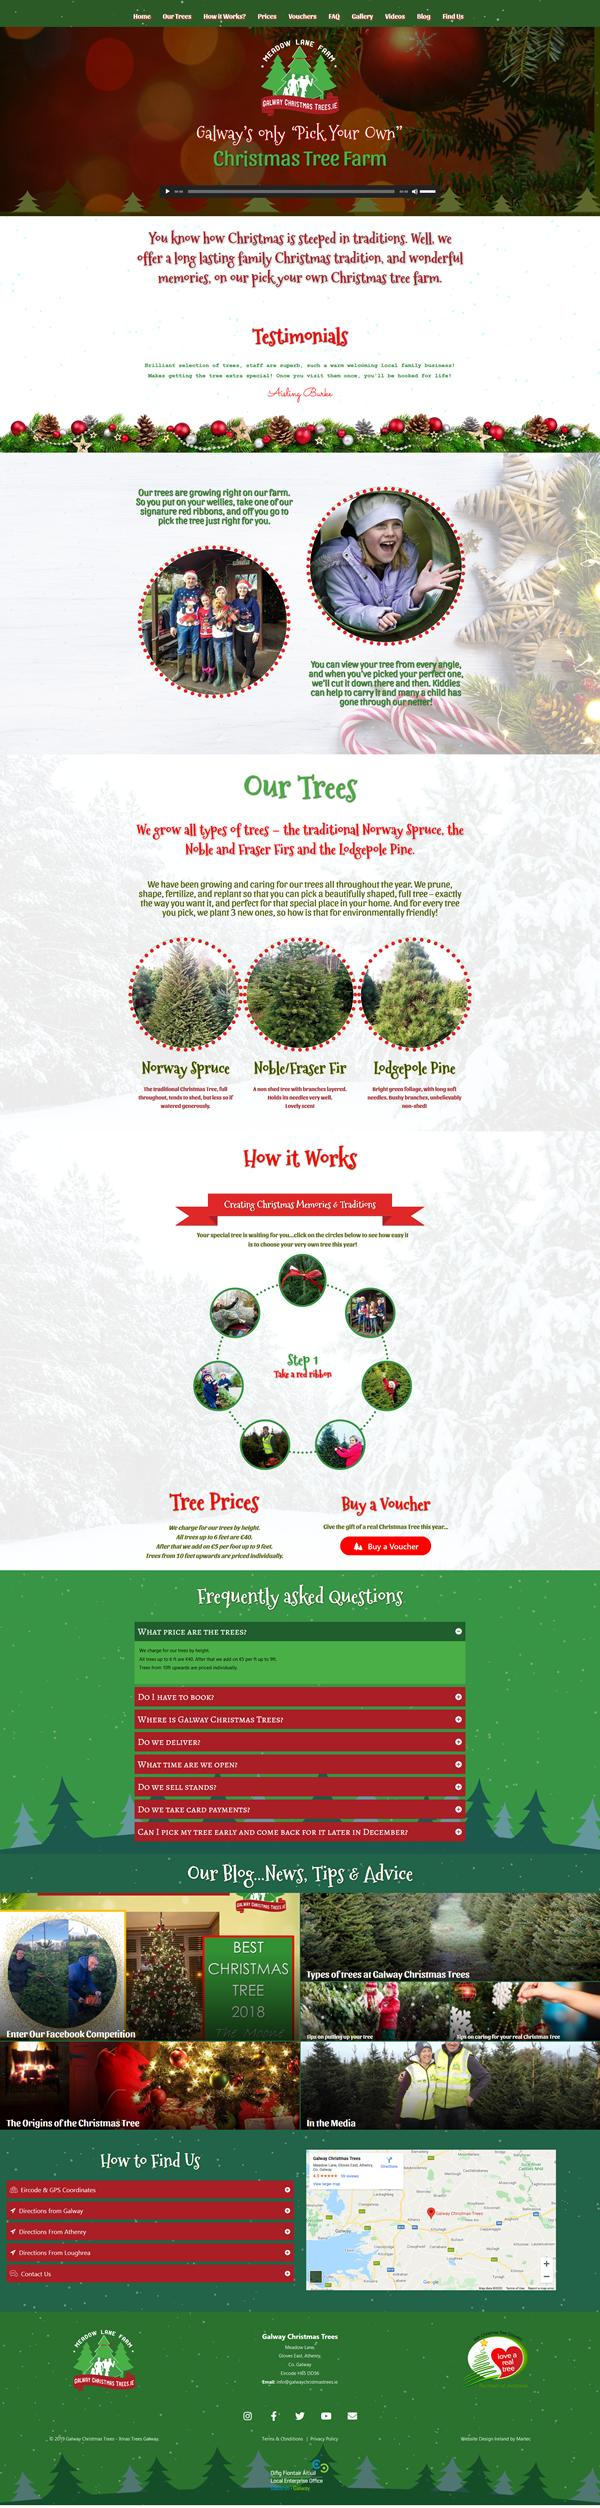 Galway Christmas Trees Web Design Galway